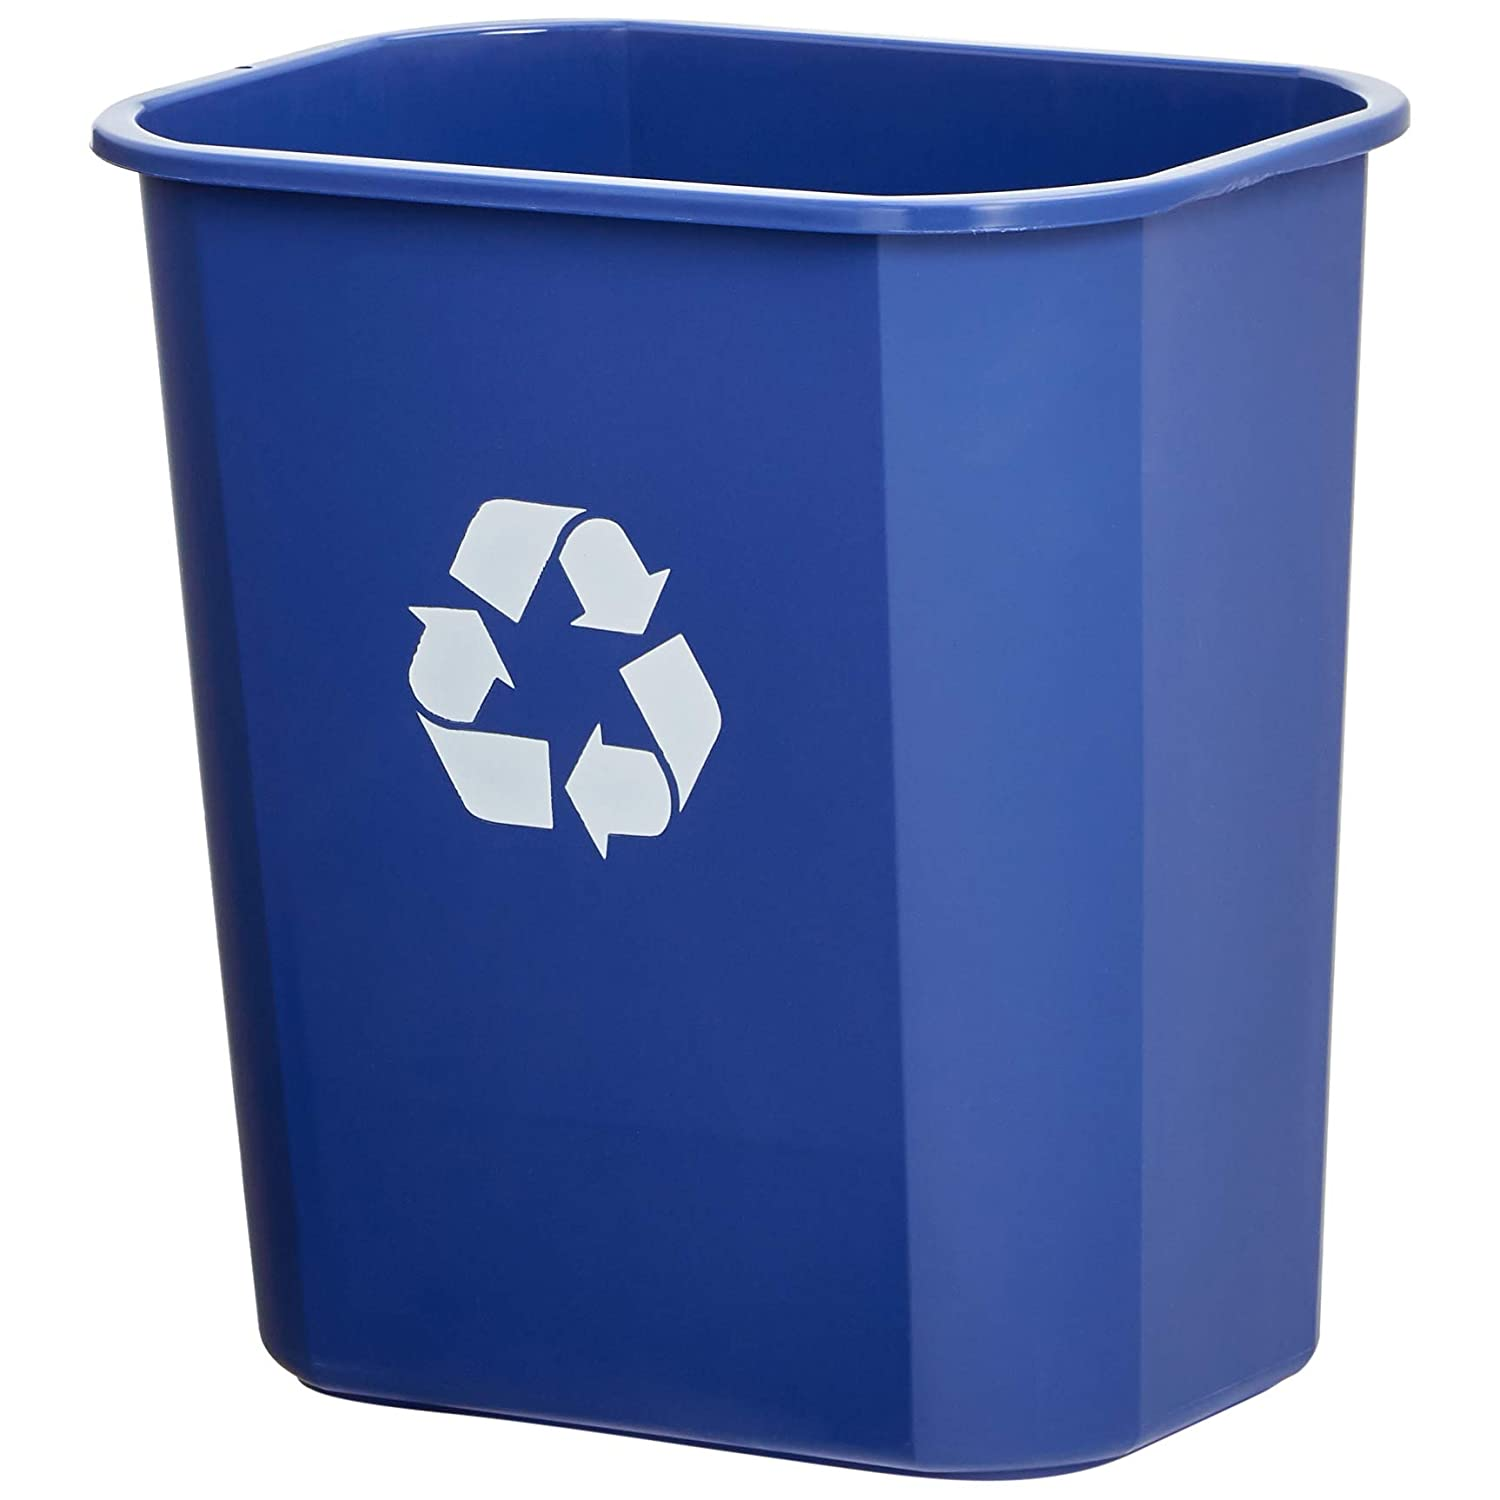 AmazonBasics 3 Gallon Commercial Waste Basket, Recycling, Blue, 12-Pack